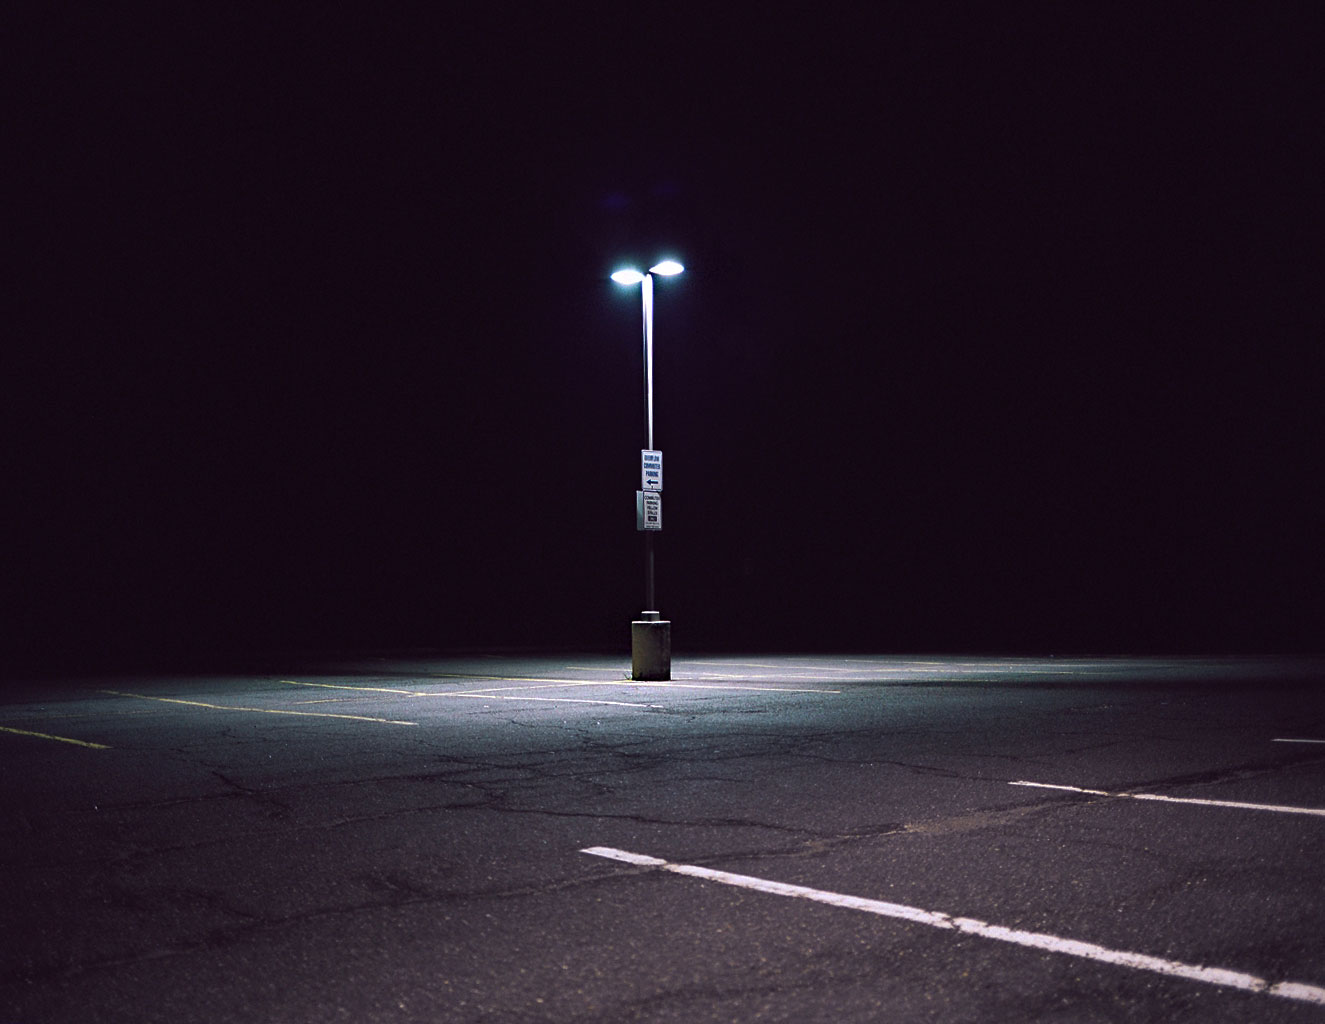 img/pictures/afterhour/streetlamp.jpg